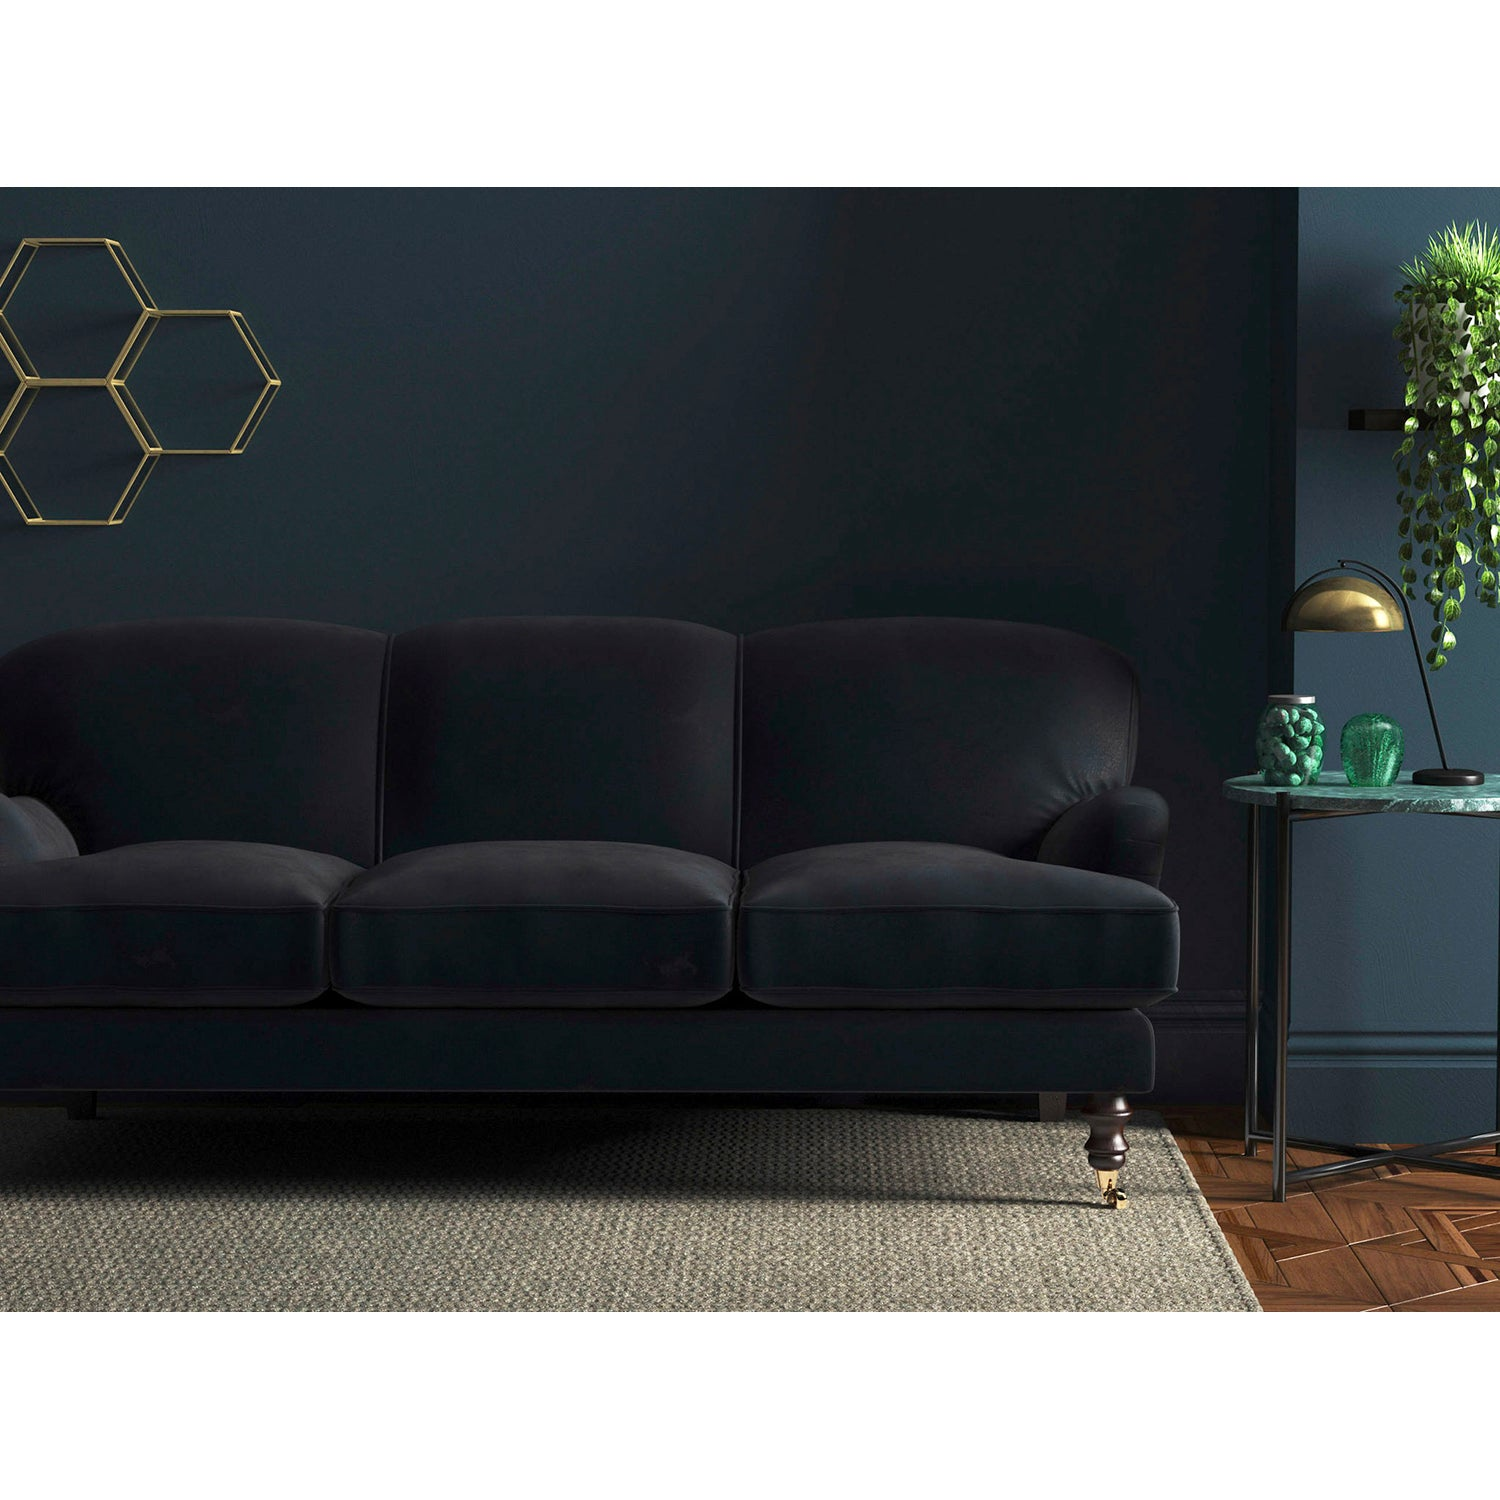 Navy velvet sofa with a stain resistant finish